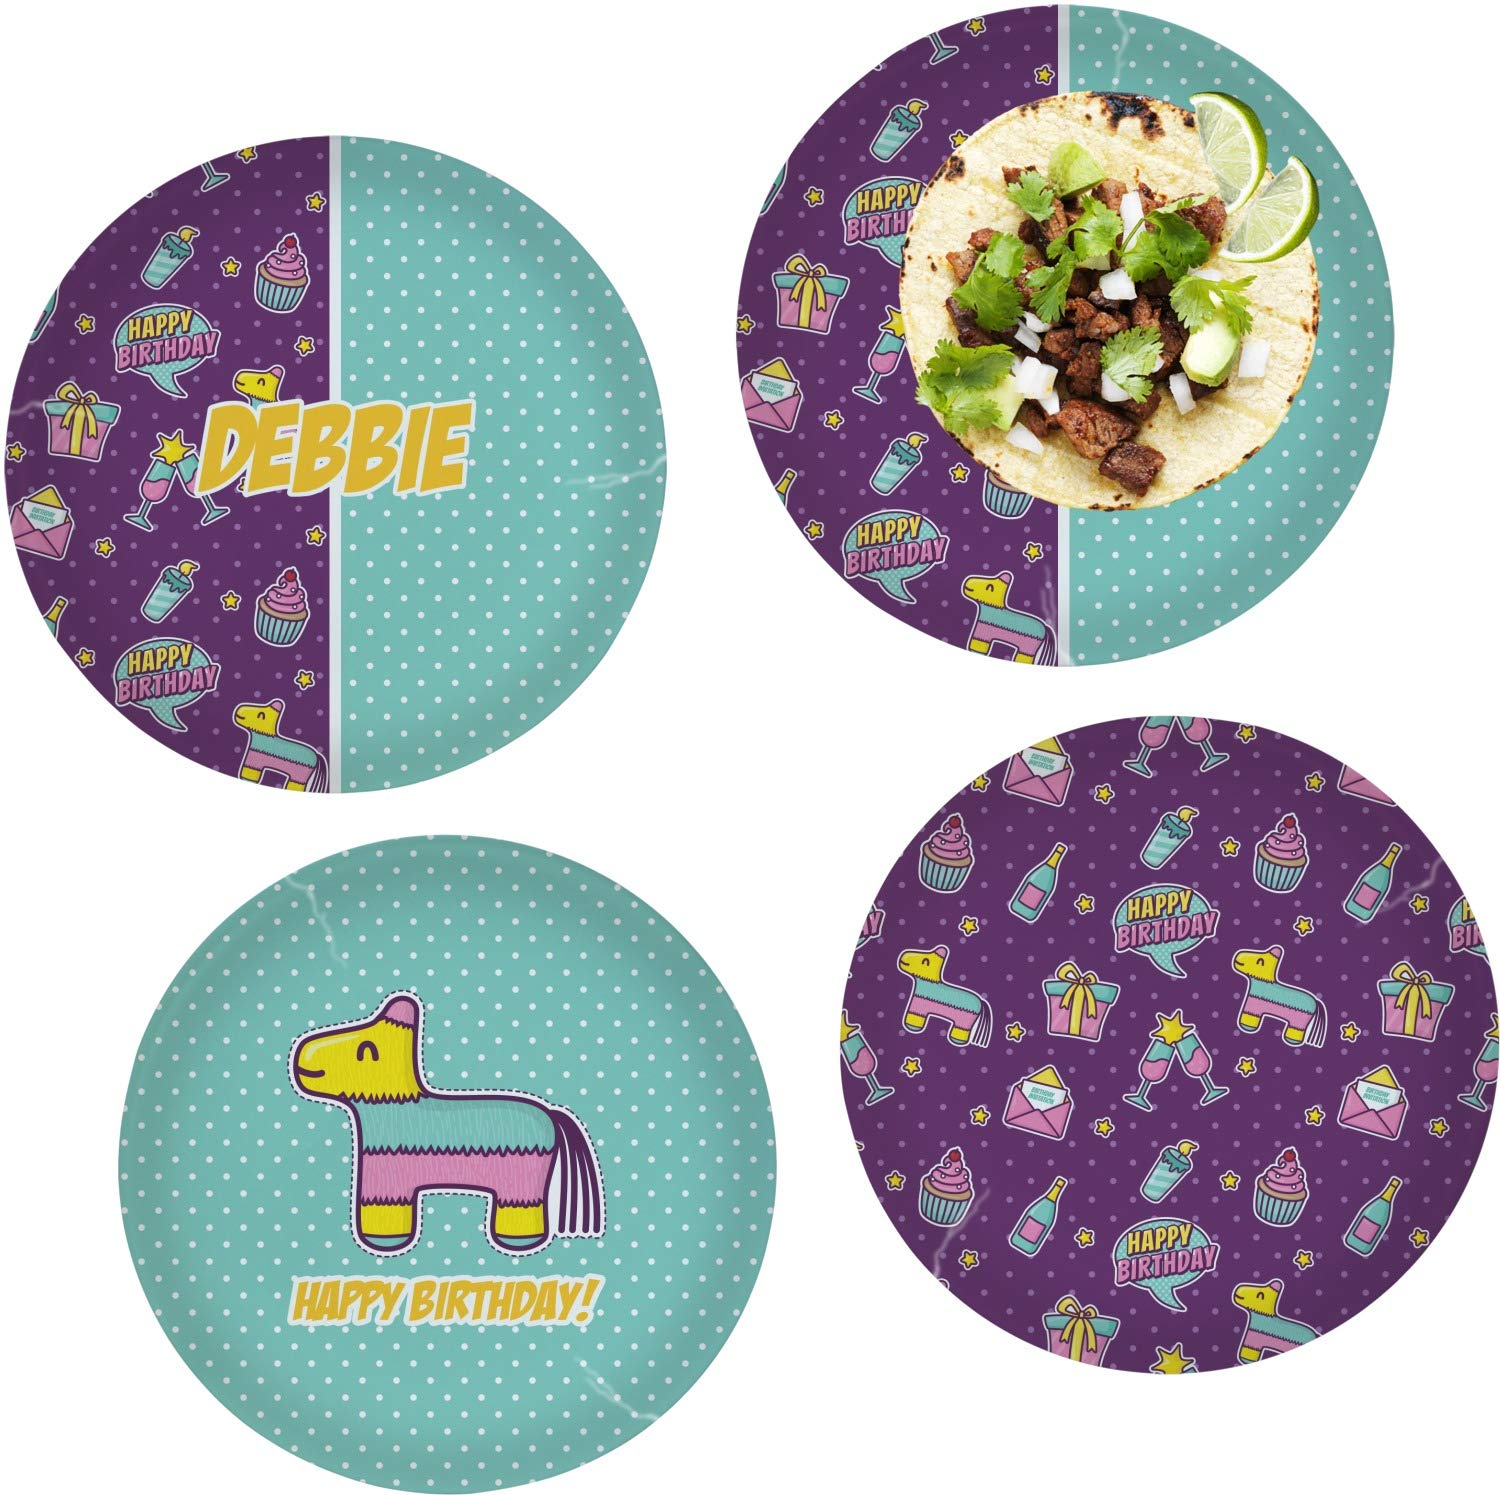 Pinata Birthday Set of 4 Glass Lunch/Dinner Plate 10'' (Personalized) by RNK Shops (Image #1)